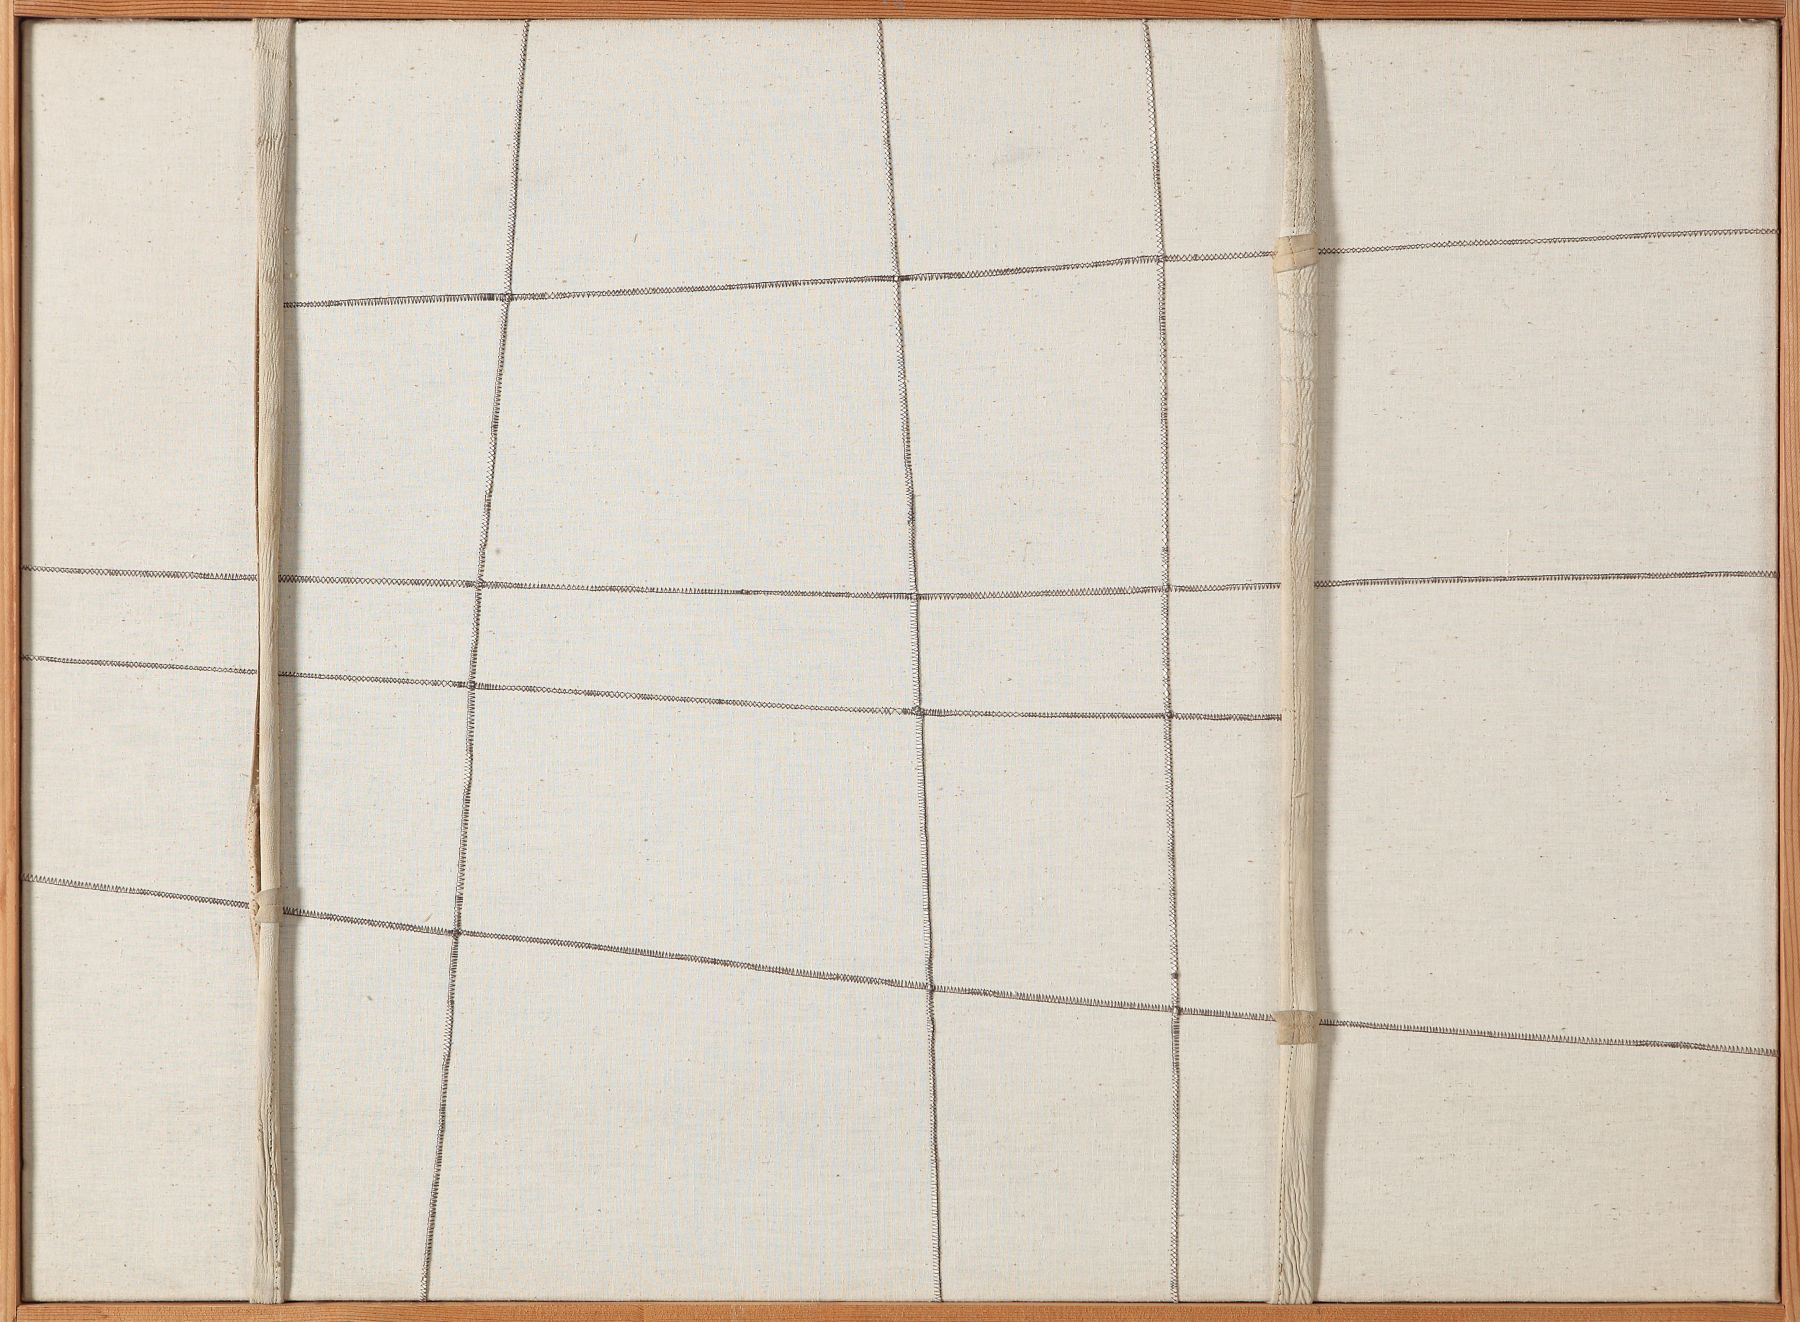 Nuvolo (Giorgio Ascani). Untitled. 1962. Sewn canvas and deerskin, 63.5 by 88 cm (25 by 34⅝ in.)